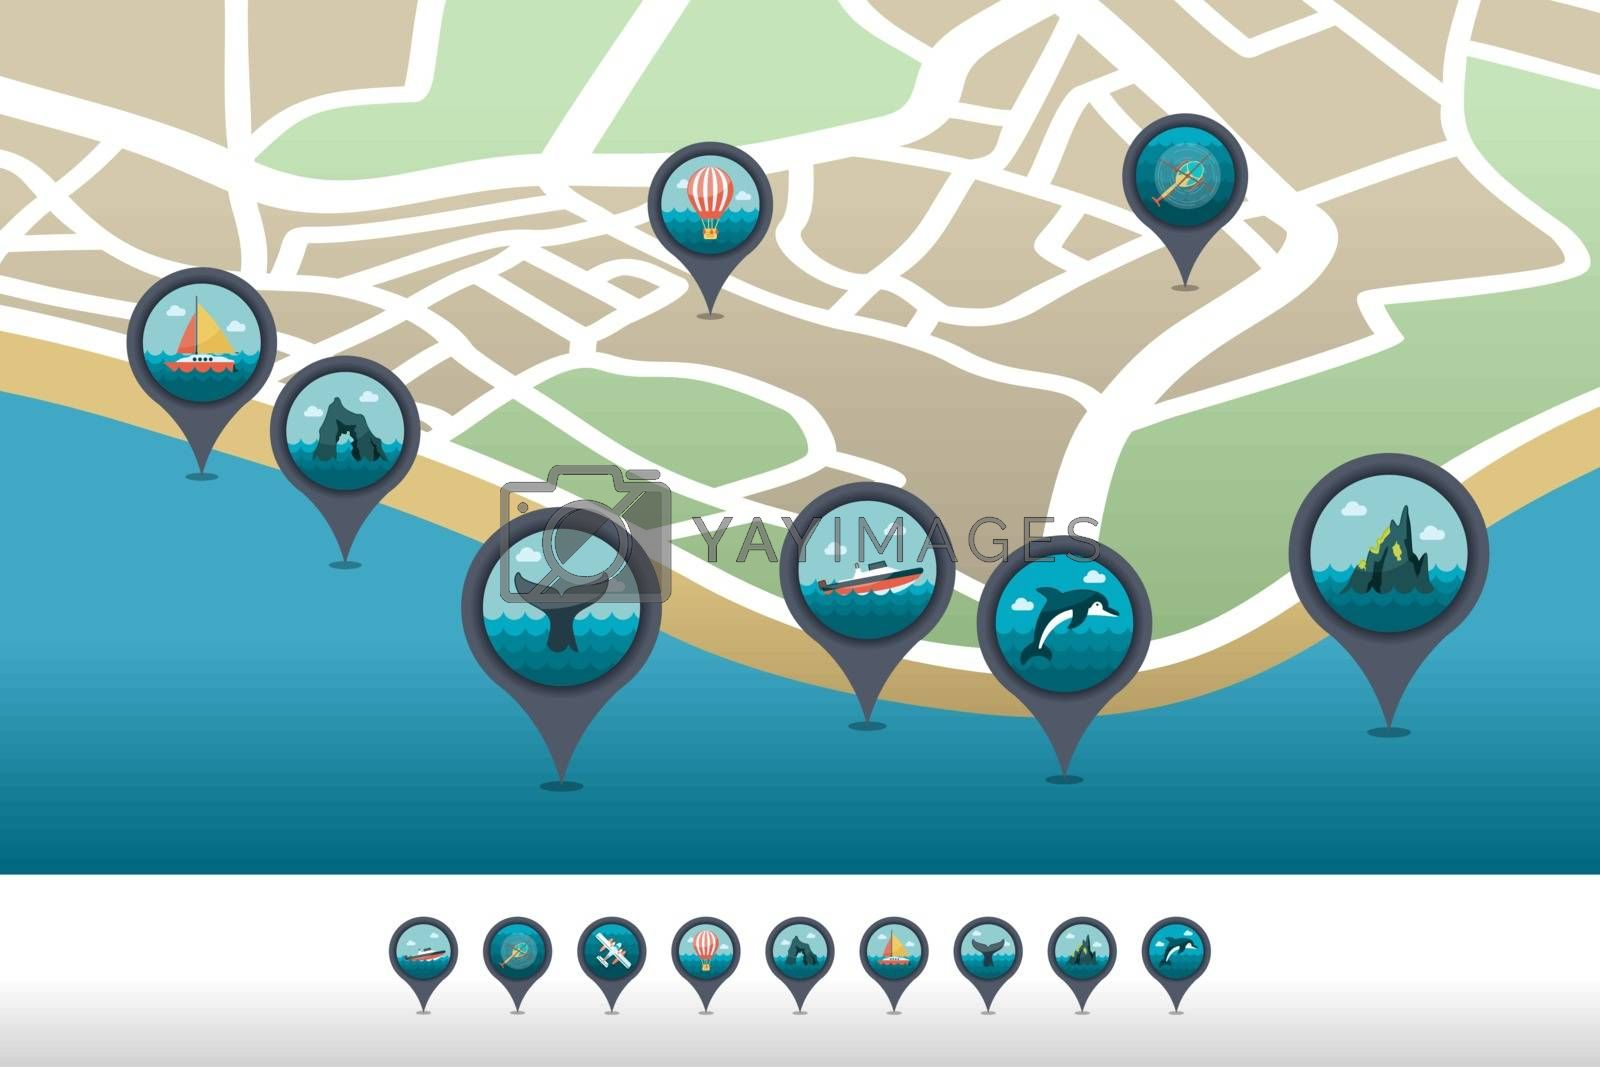 Excursion sea pin map icon located on the map by nosik